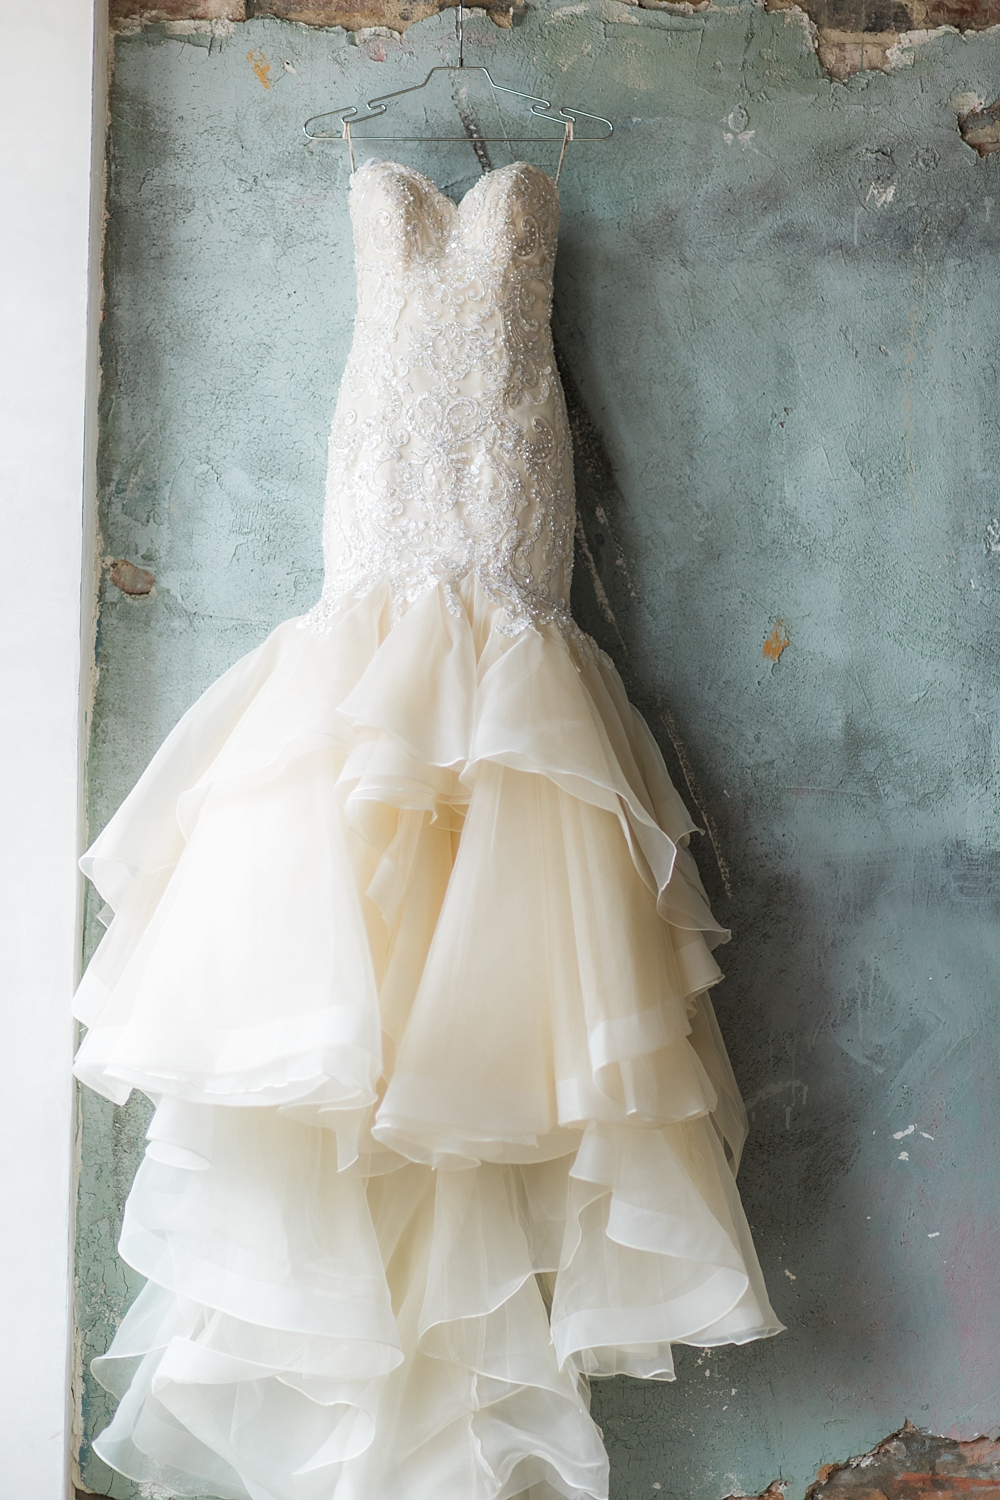 maggie-sottero-wedding-dress-nashville.jpg